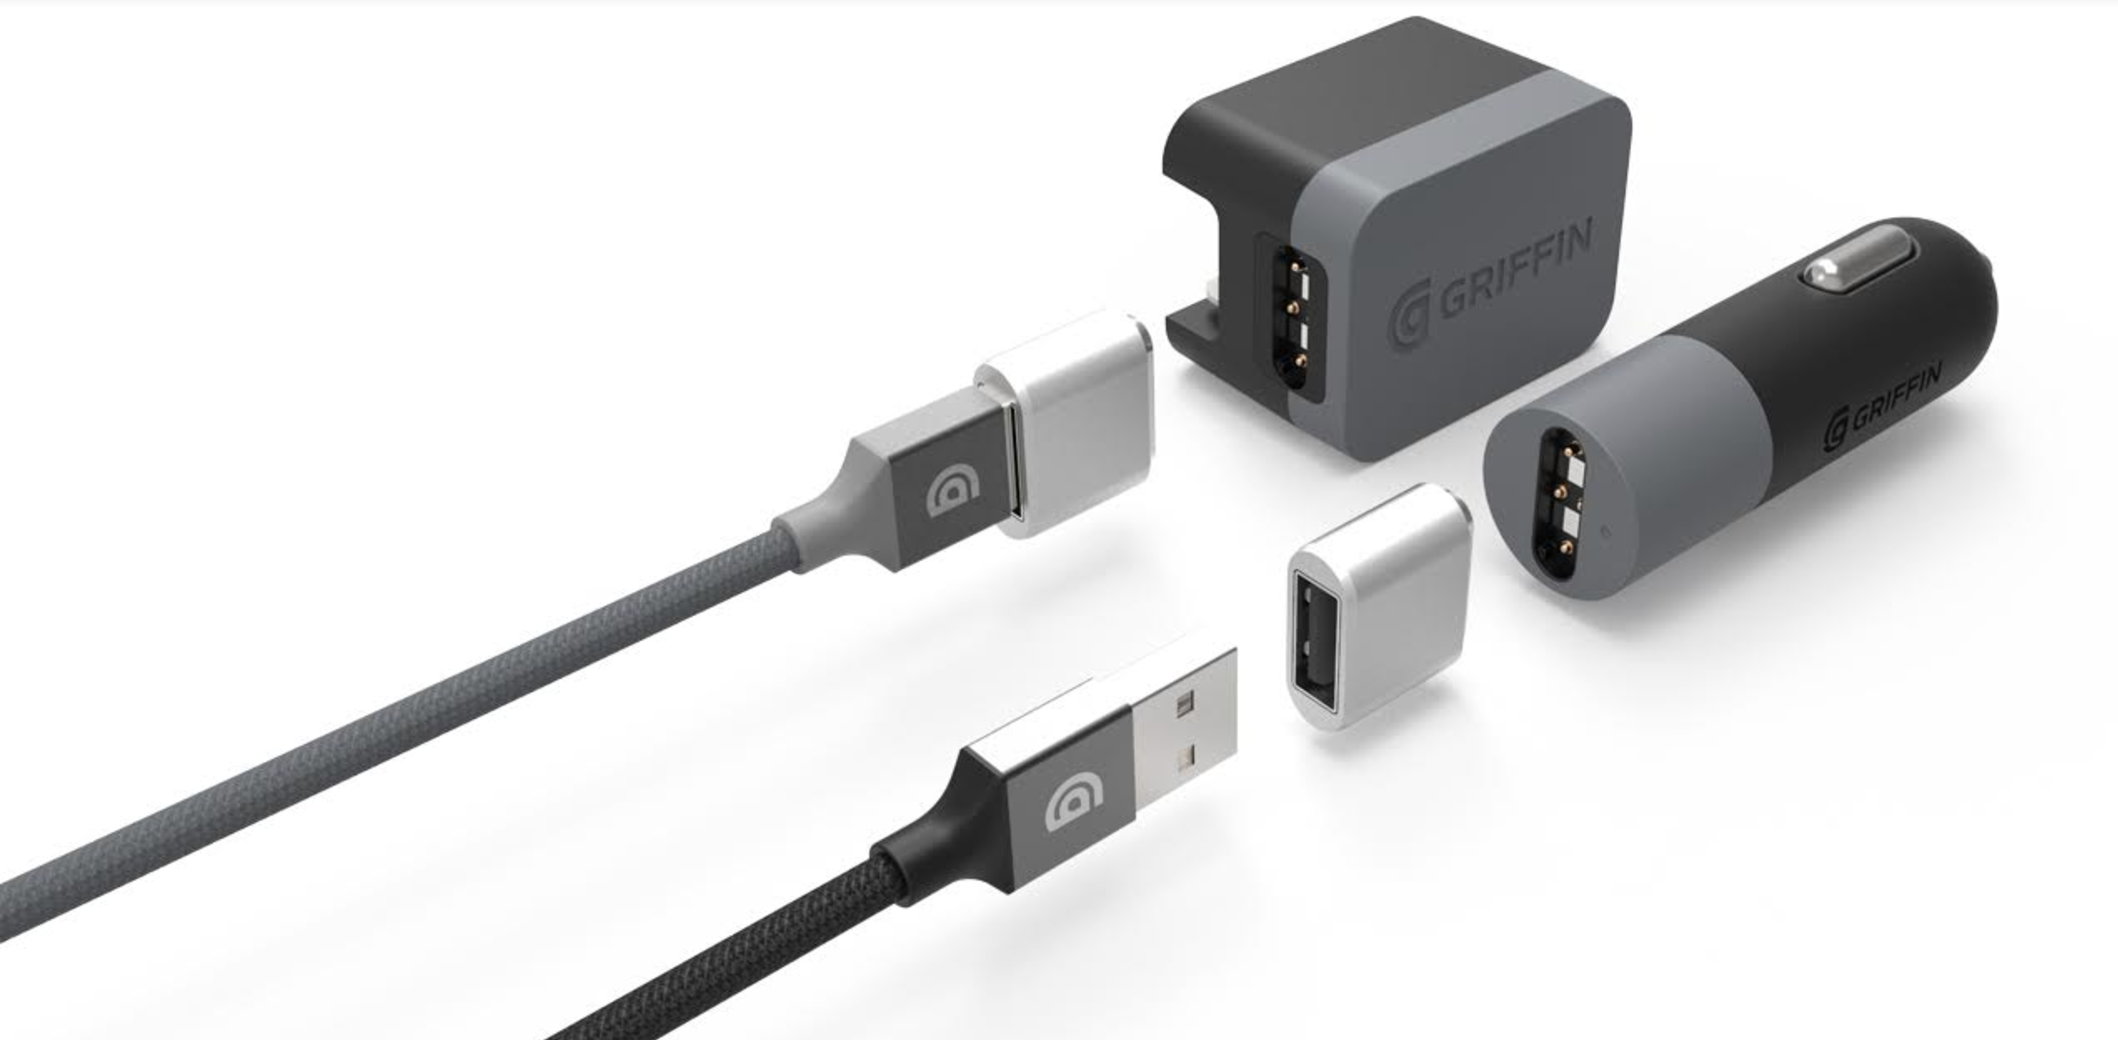 breaksafe-usb-chargers-2